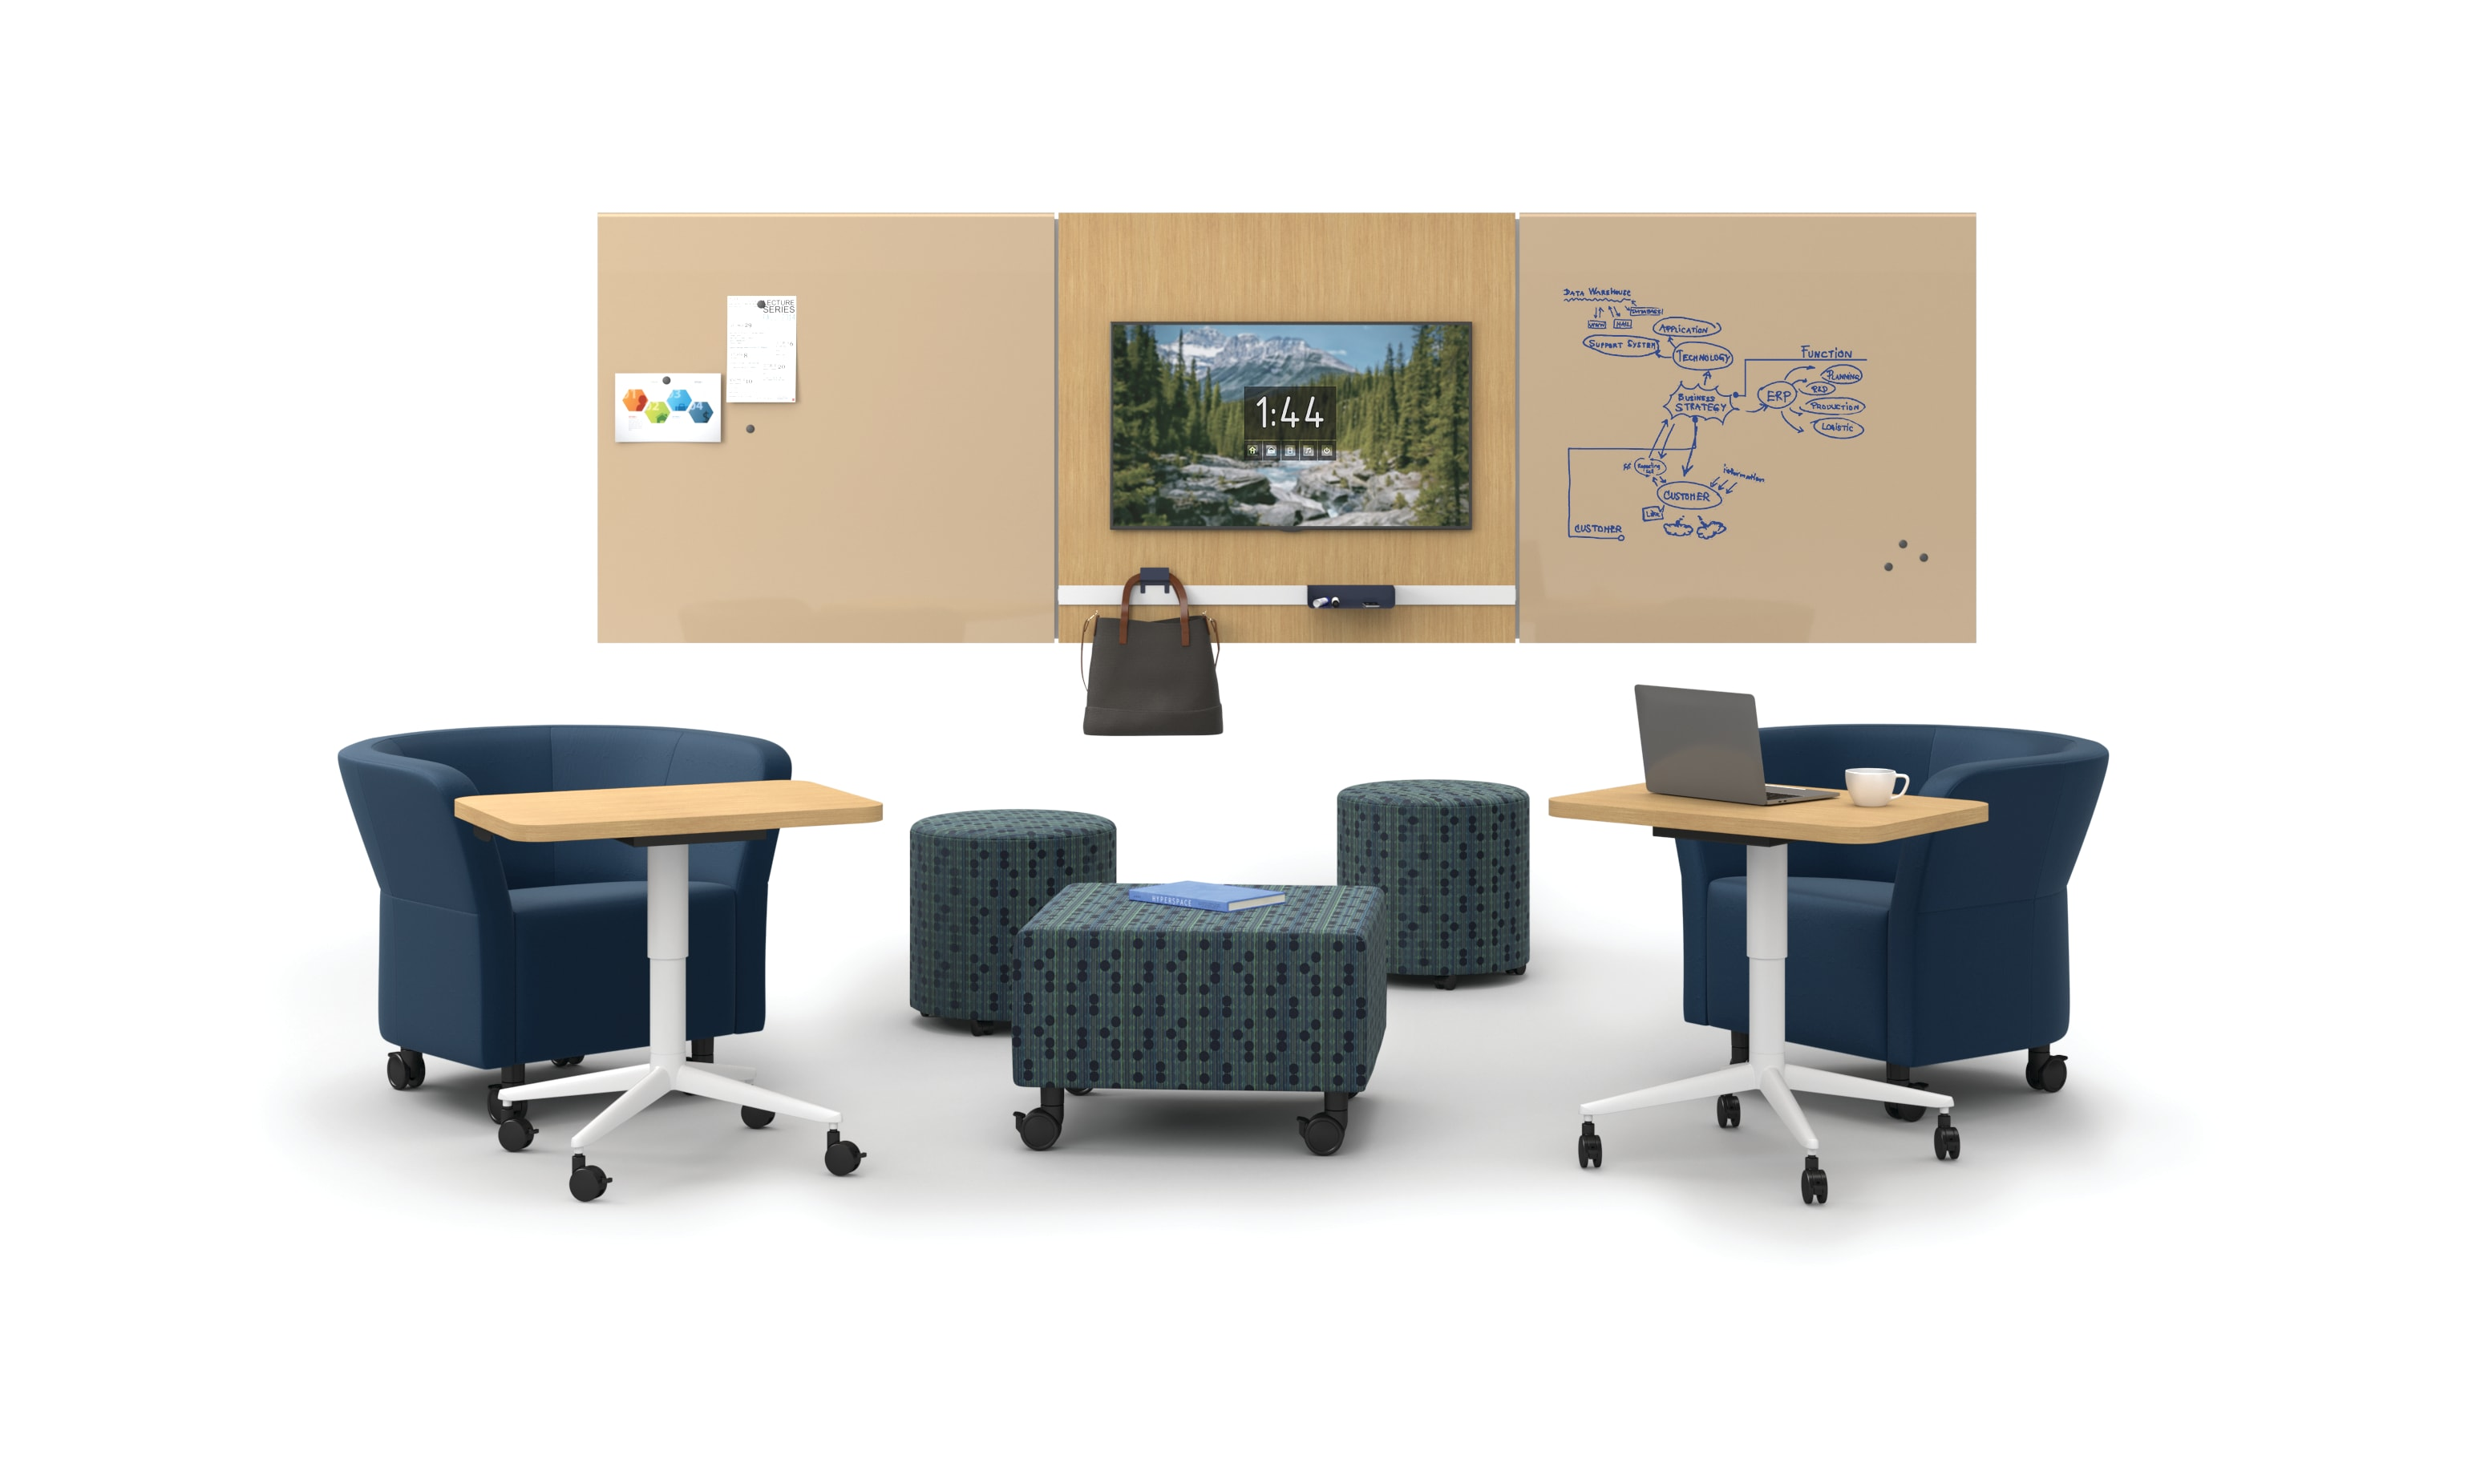 Flock seating with Huddle tables around Workwall open plan setting